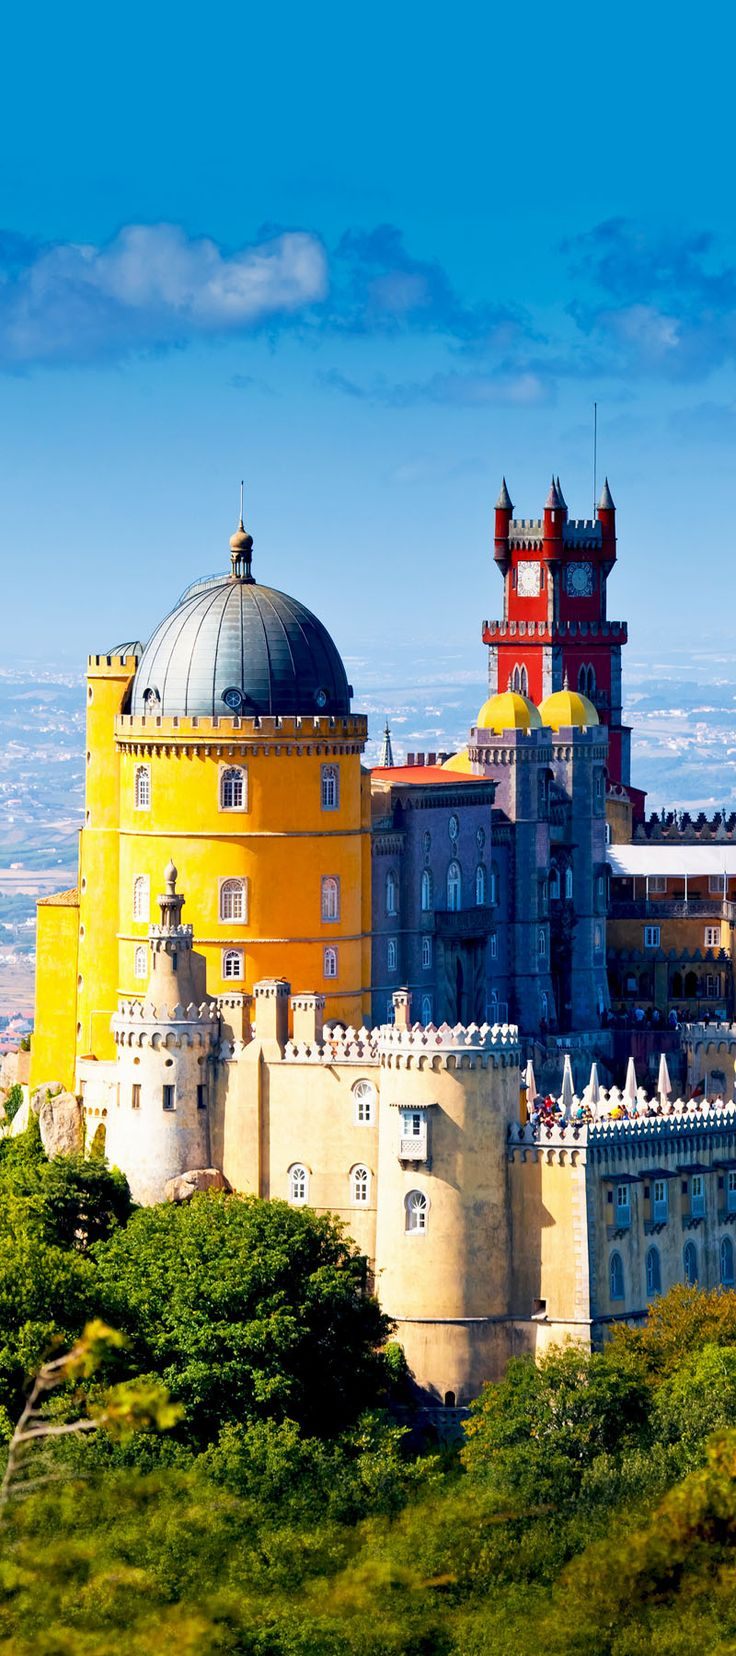 Da Pena Castle, Sintra, Portugal. A great place to travel and put on your bucket list. I can't wait to go here!